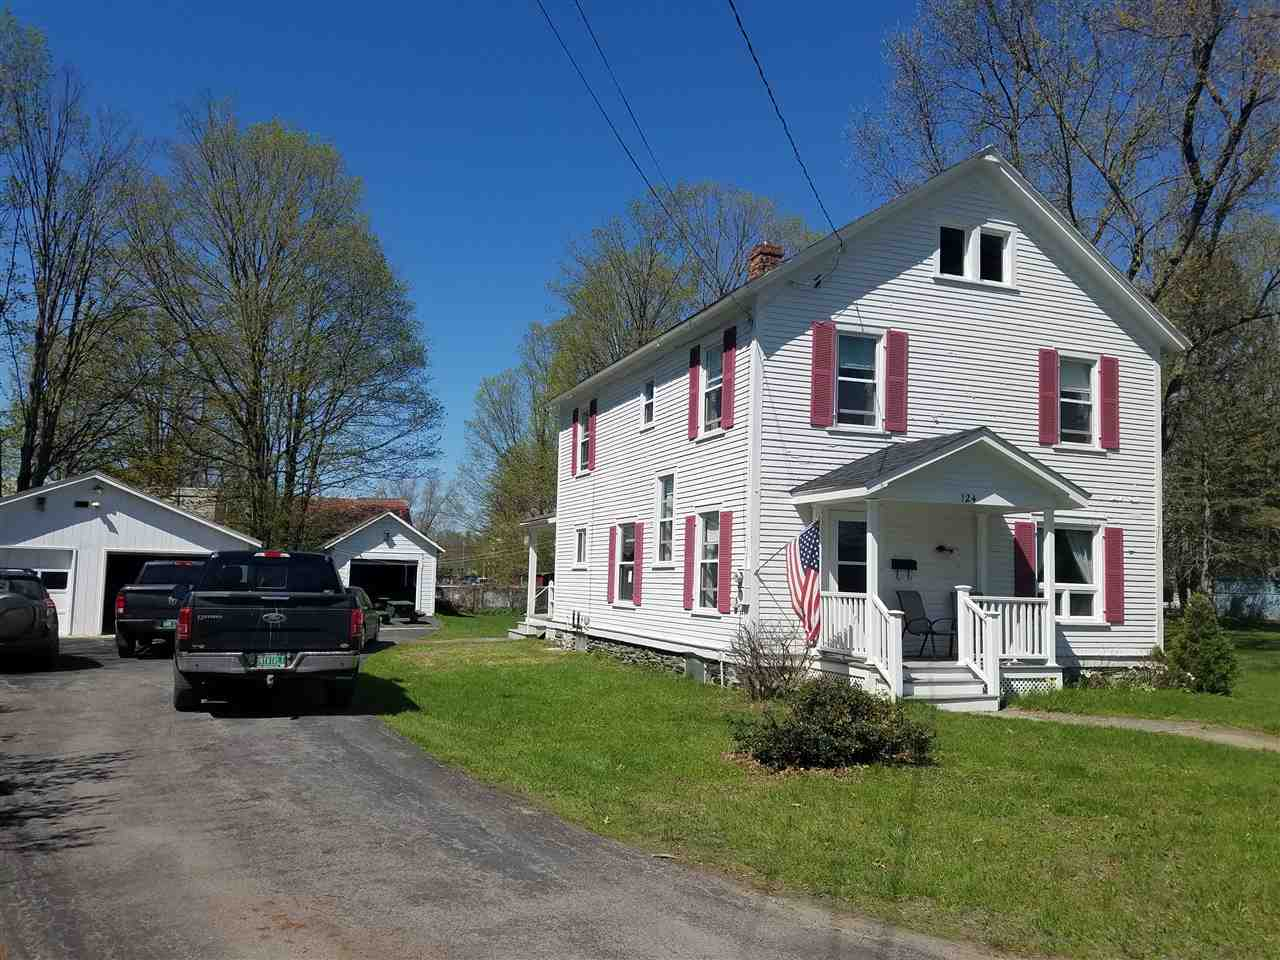 Property for sale at 124 Roberts Avenue, Poultney,  VT 05764